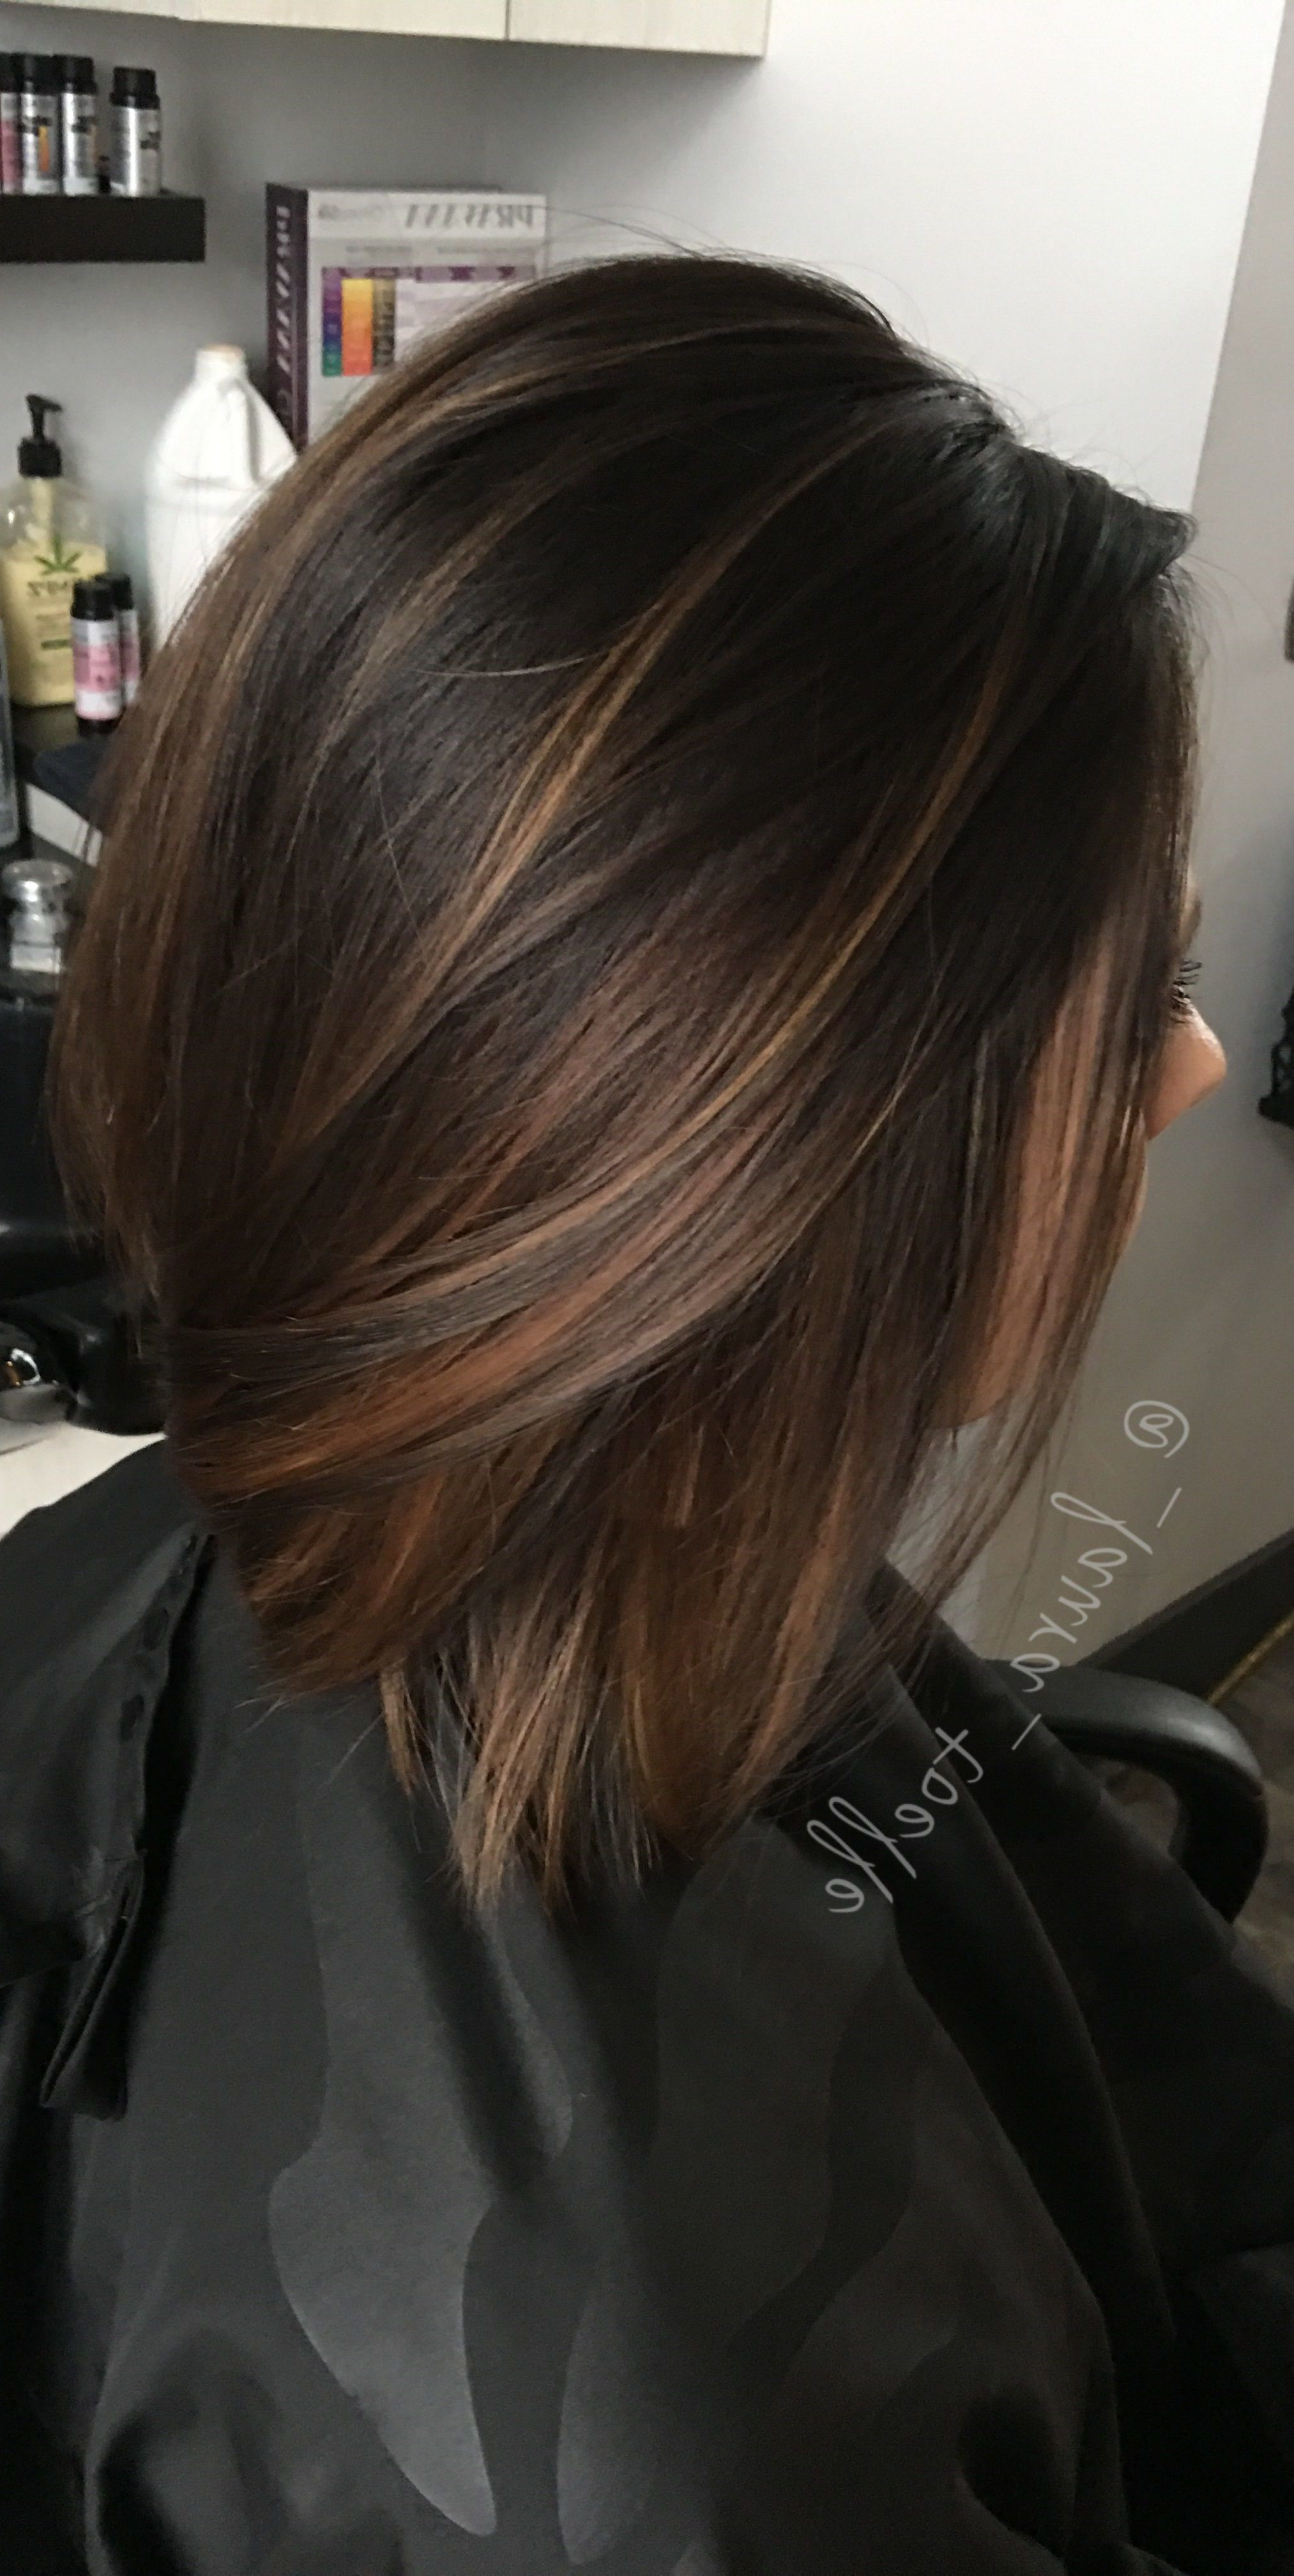 28 Incredible Examples Of Caramel Balayage On Short Dark Brown Hair Hair Styles Hair Style Ideas In 2020 Hair Styles Brown Hair With Highlights Balayage Hair